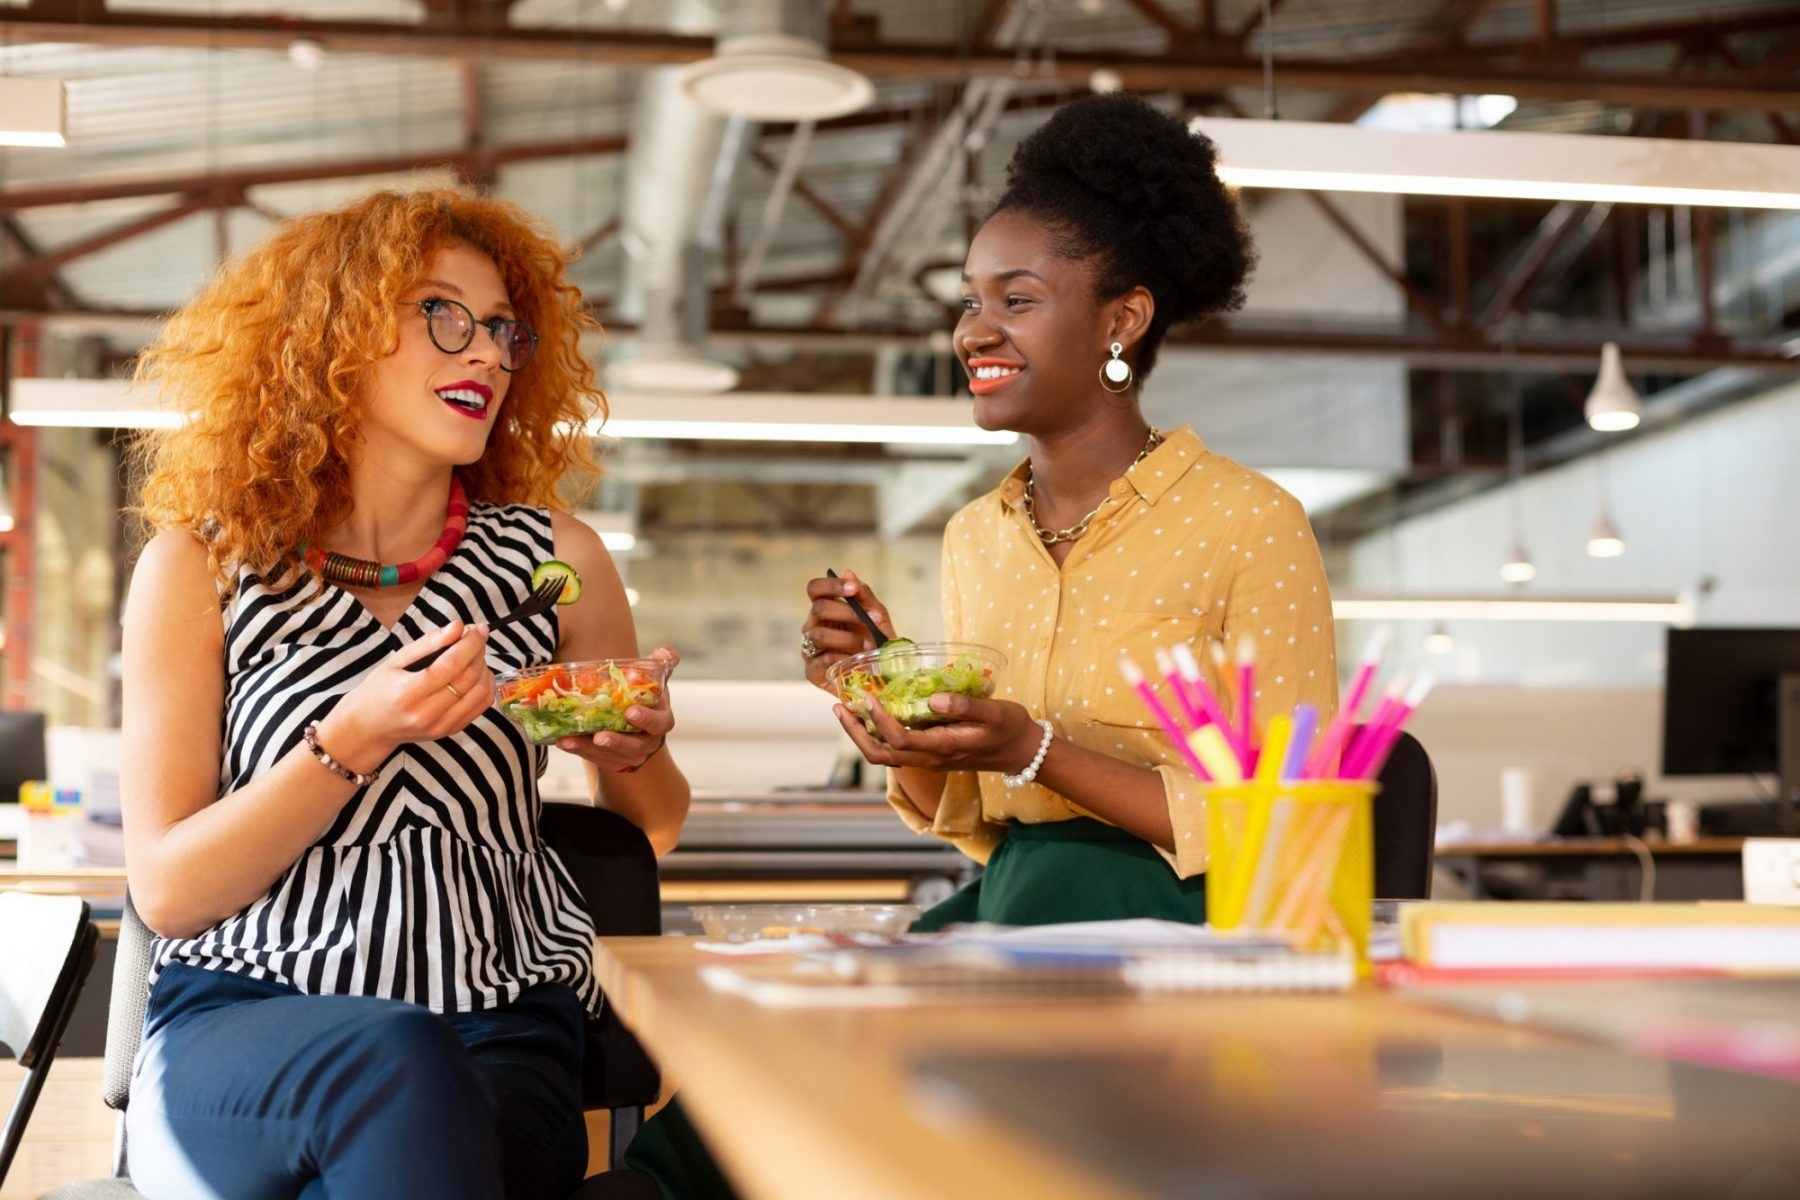 Omaha Healthy Snacks | Workplace Culture | Office Pantry Service | Health and Wellness